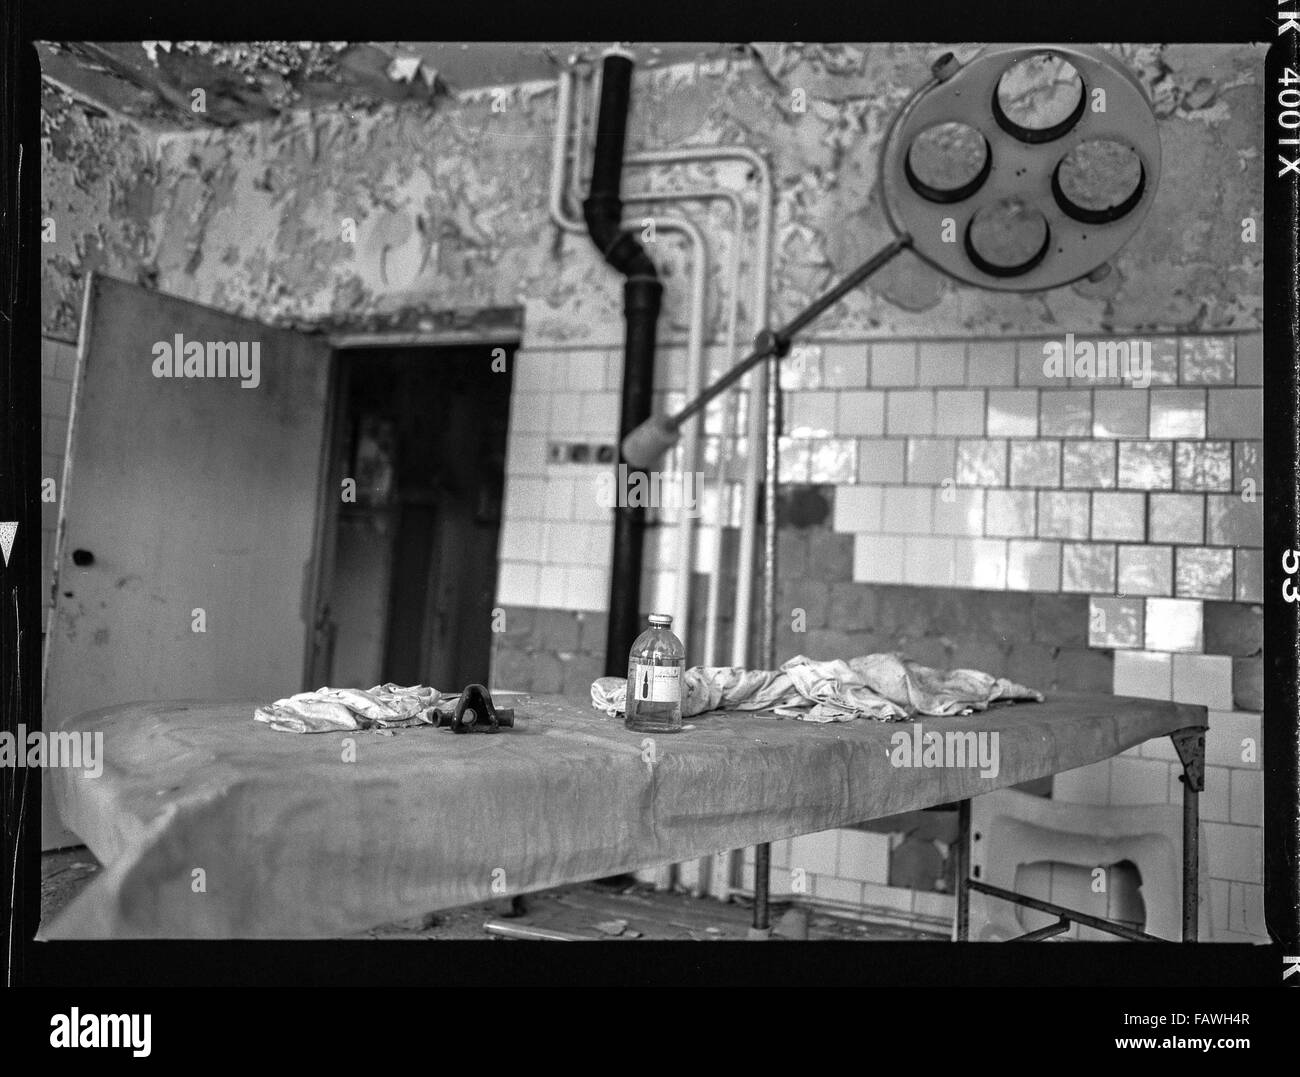 Impressions from Pripyat, a ghost town in the Ukraine, which was established in 1970 in connection with the construction - Stock Image